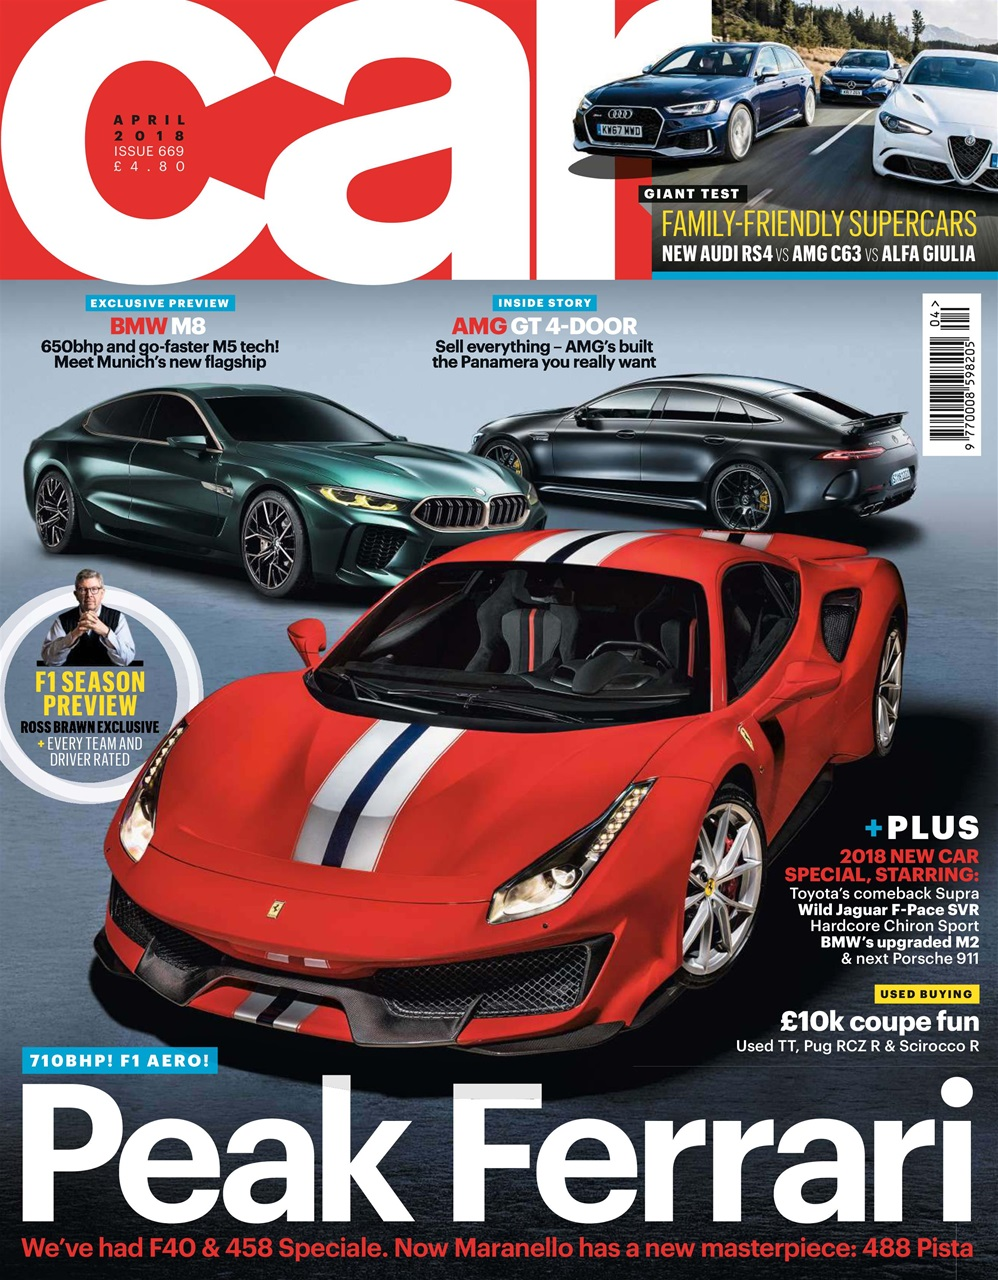 Car_UK_Magazine_Issue_669_April_2018_Page_001.jpg